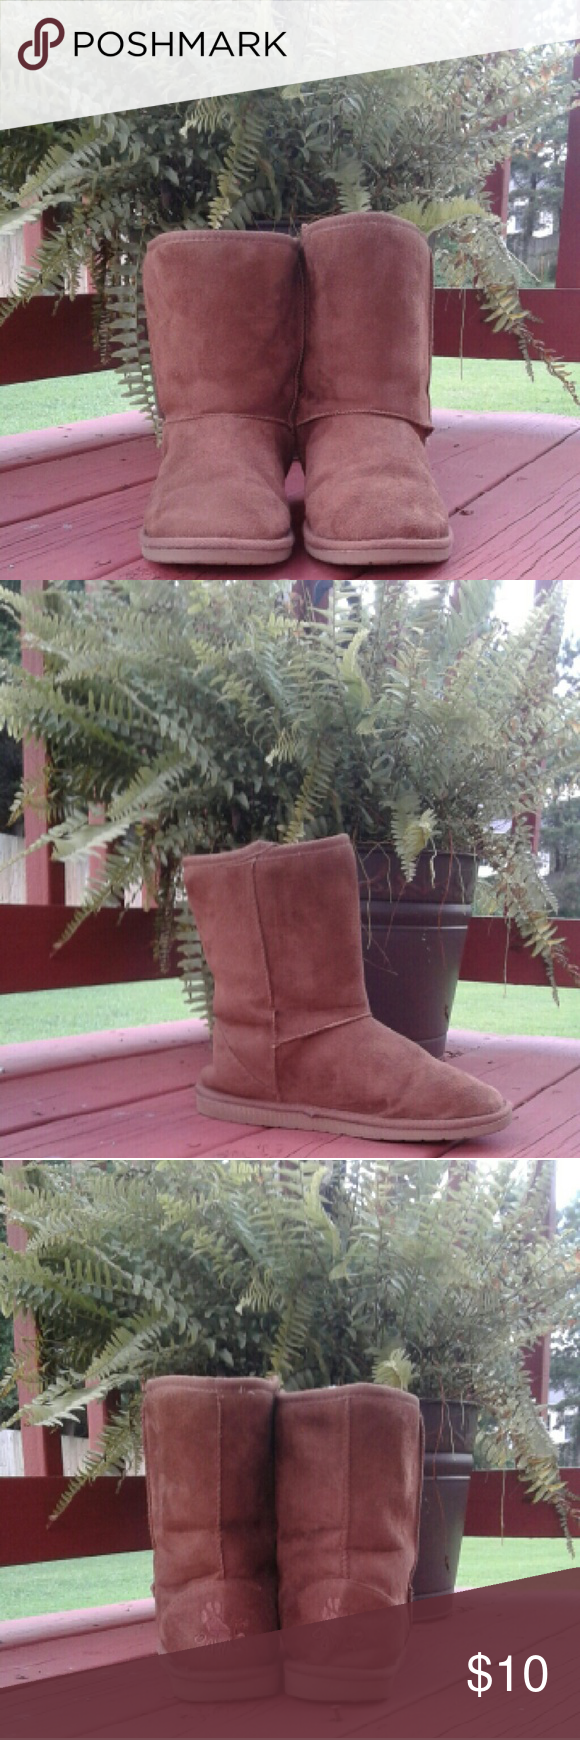 Brown DAWGS Comfortable Boots Women's DAWGS Boots... in great condition...rubber sole in excellent condition...❌PRICED TO SALE ❌ Dawgs Shoes Ankle Boots & Booties